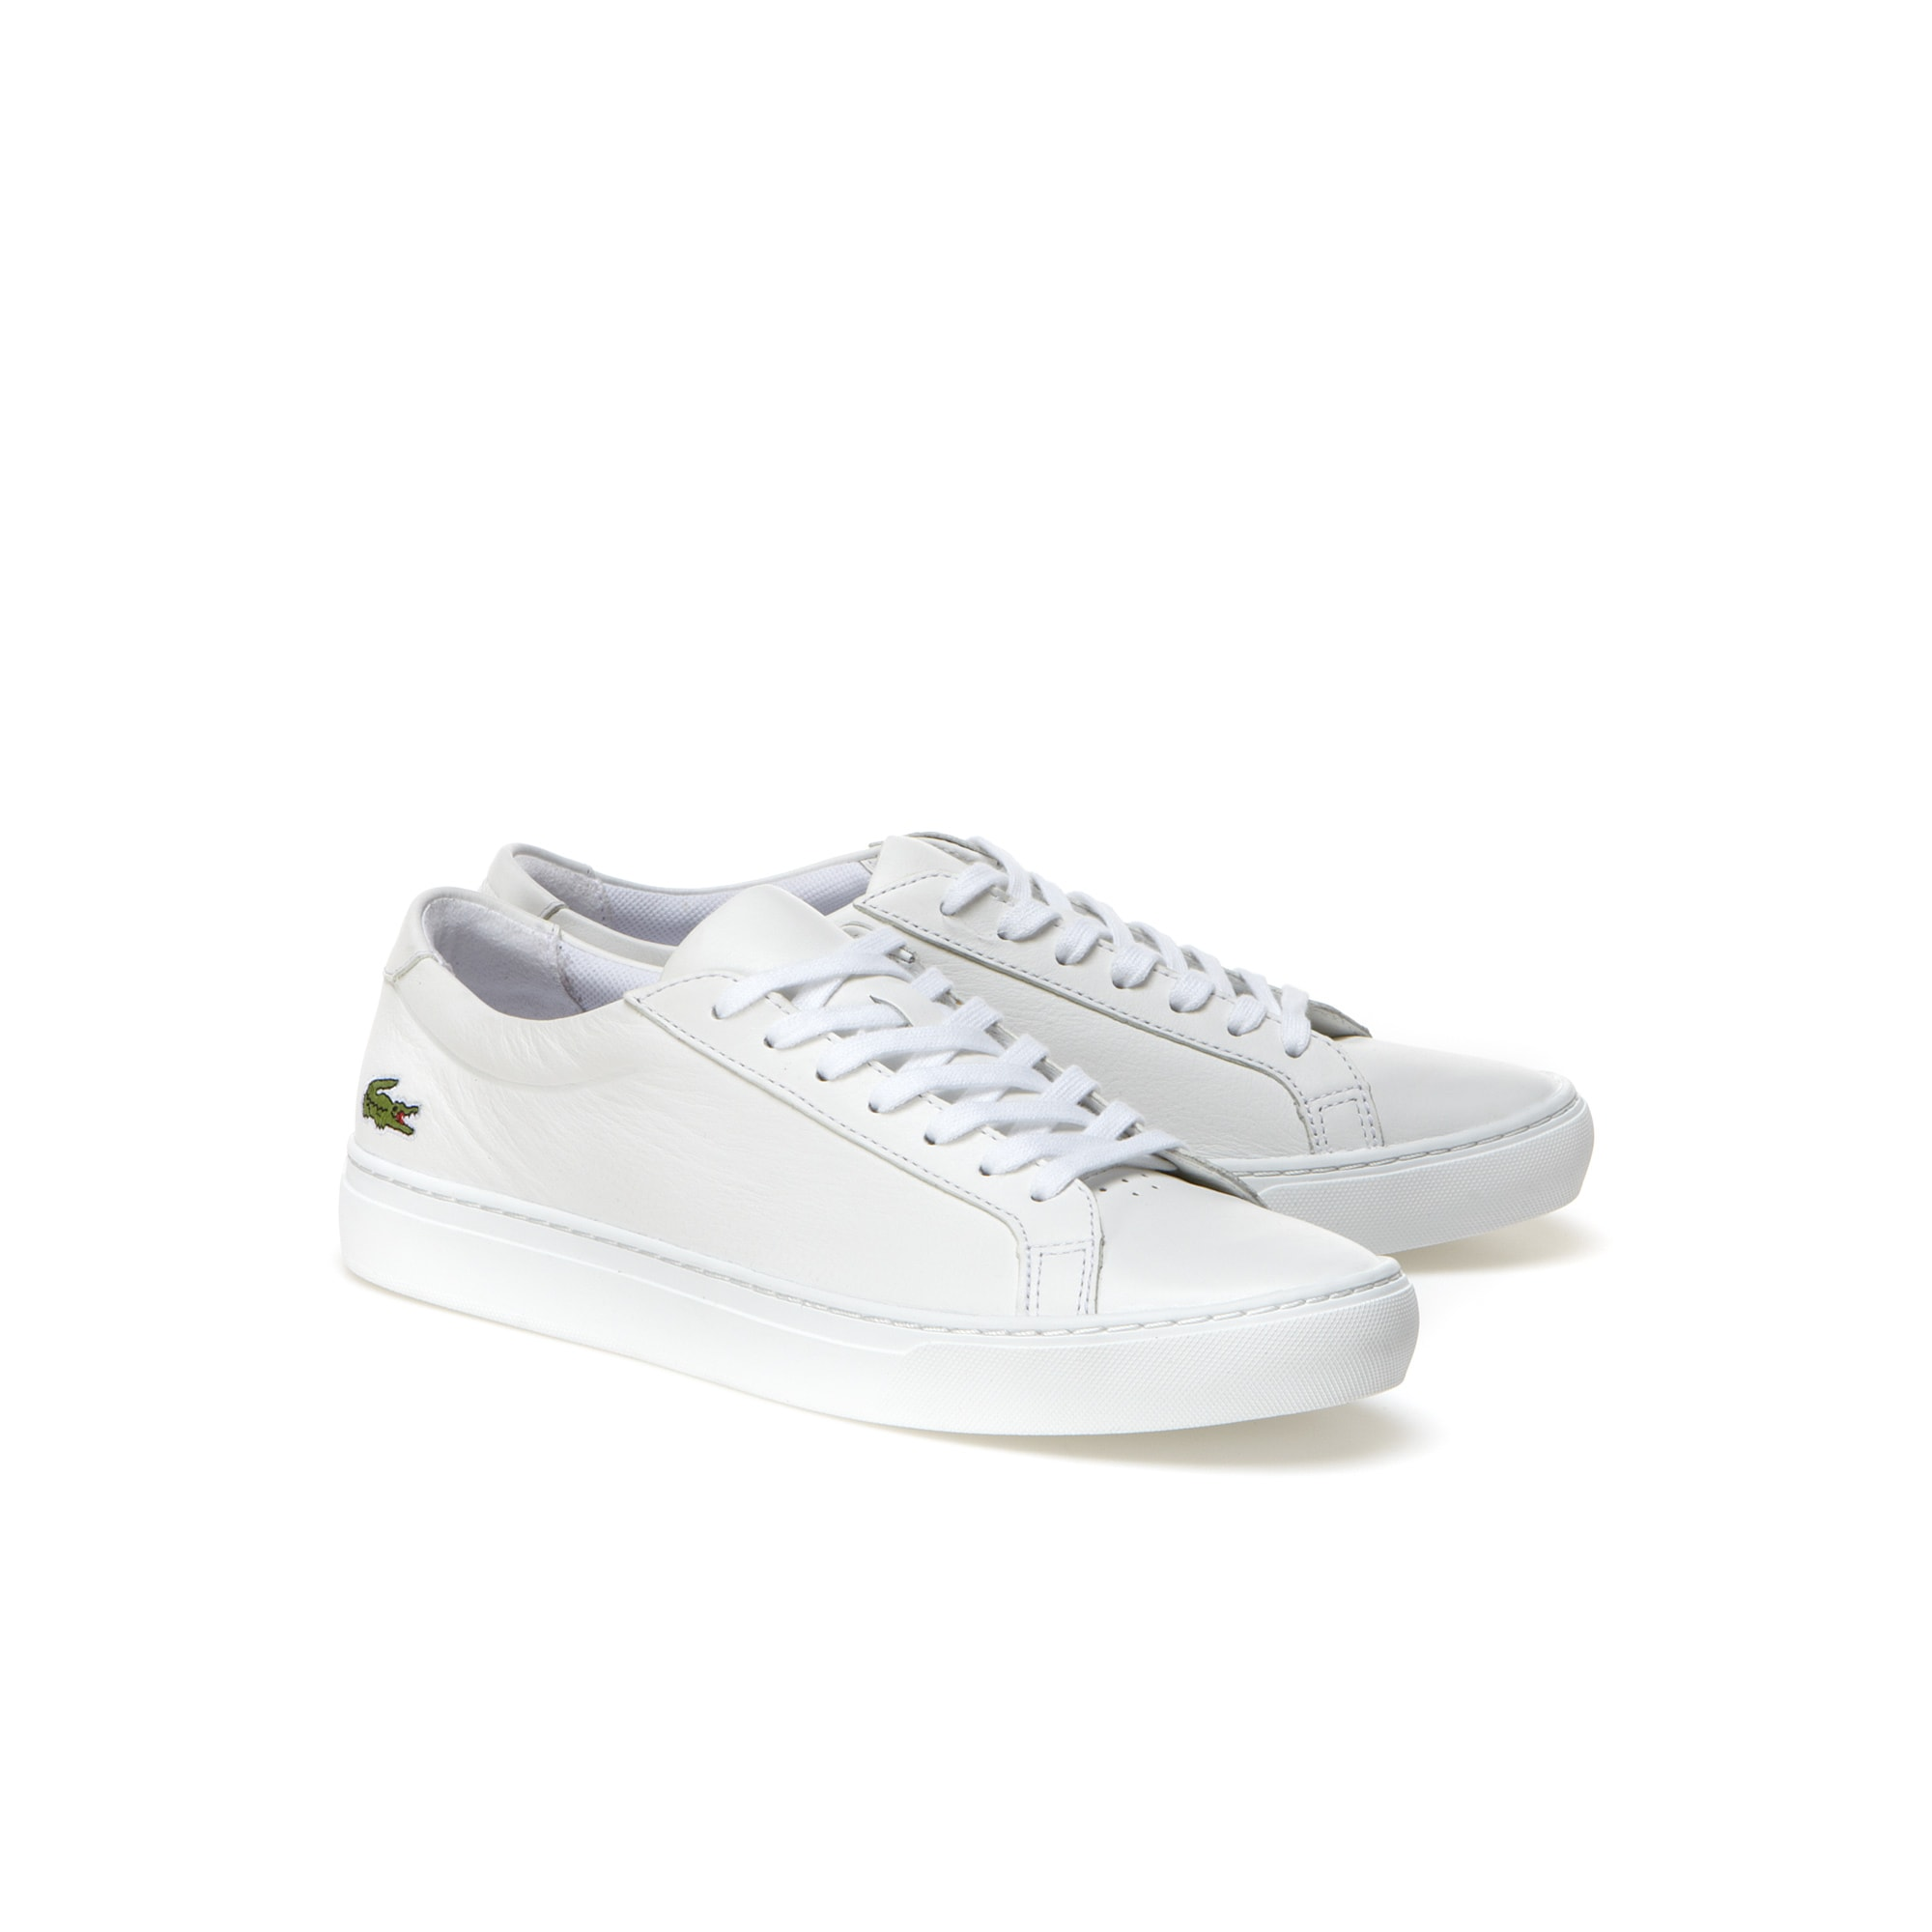 Men's L.12.12 Nappa Leather Trainers